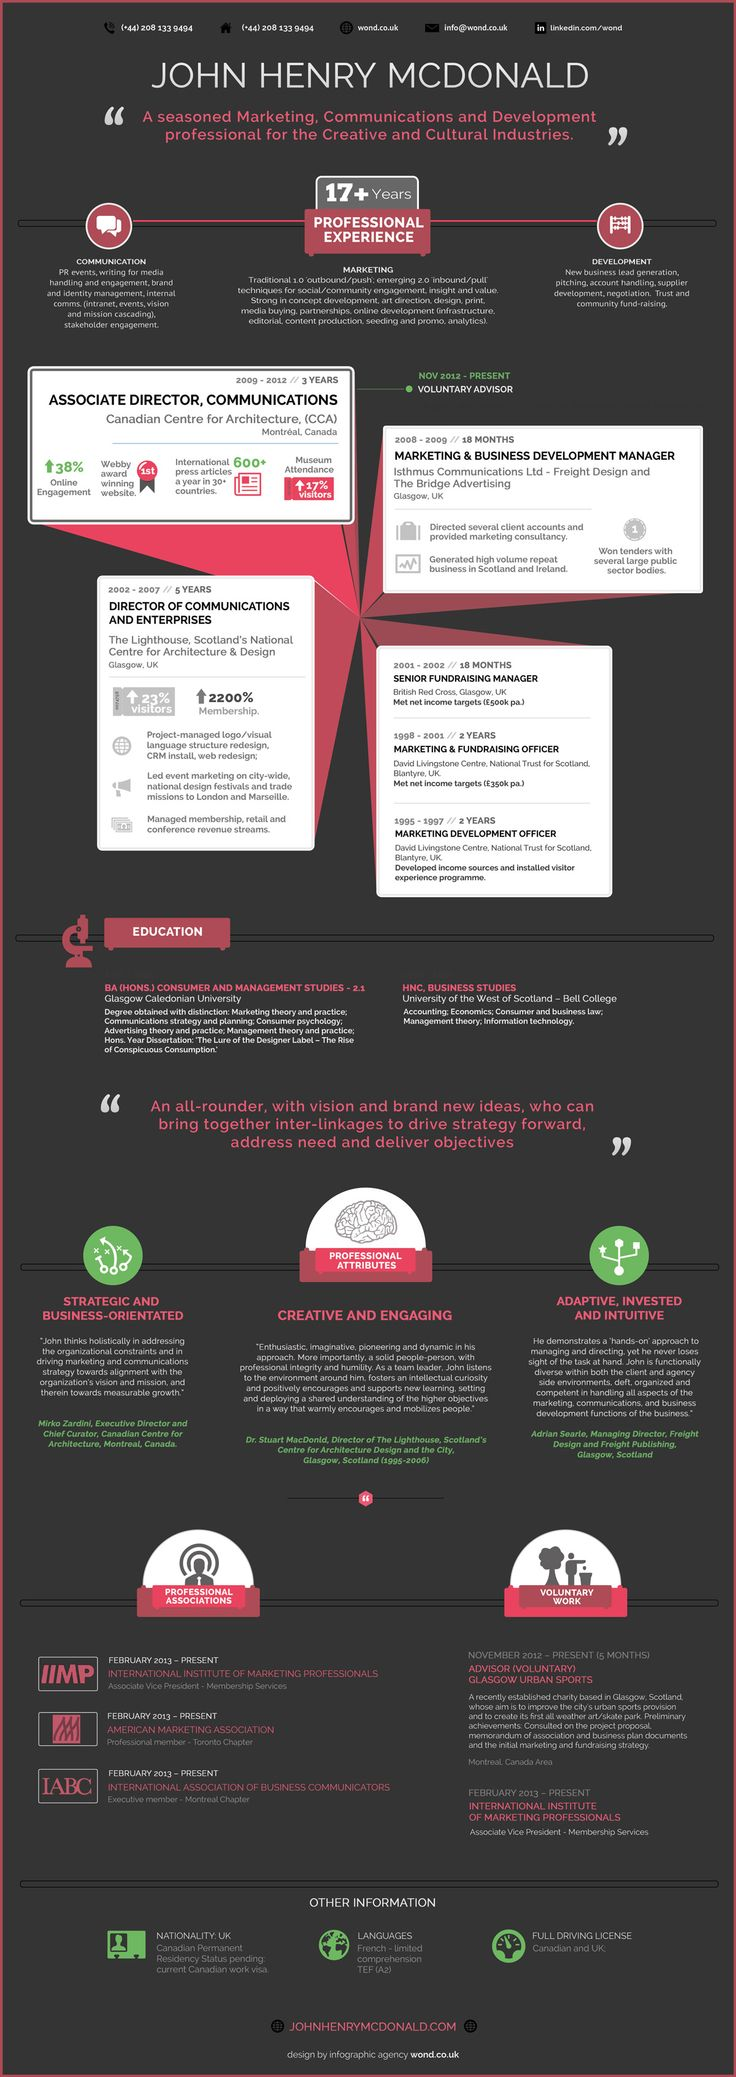 Resume infographic : account manager cover letter - Google ...